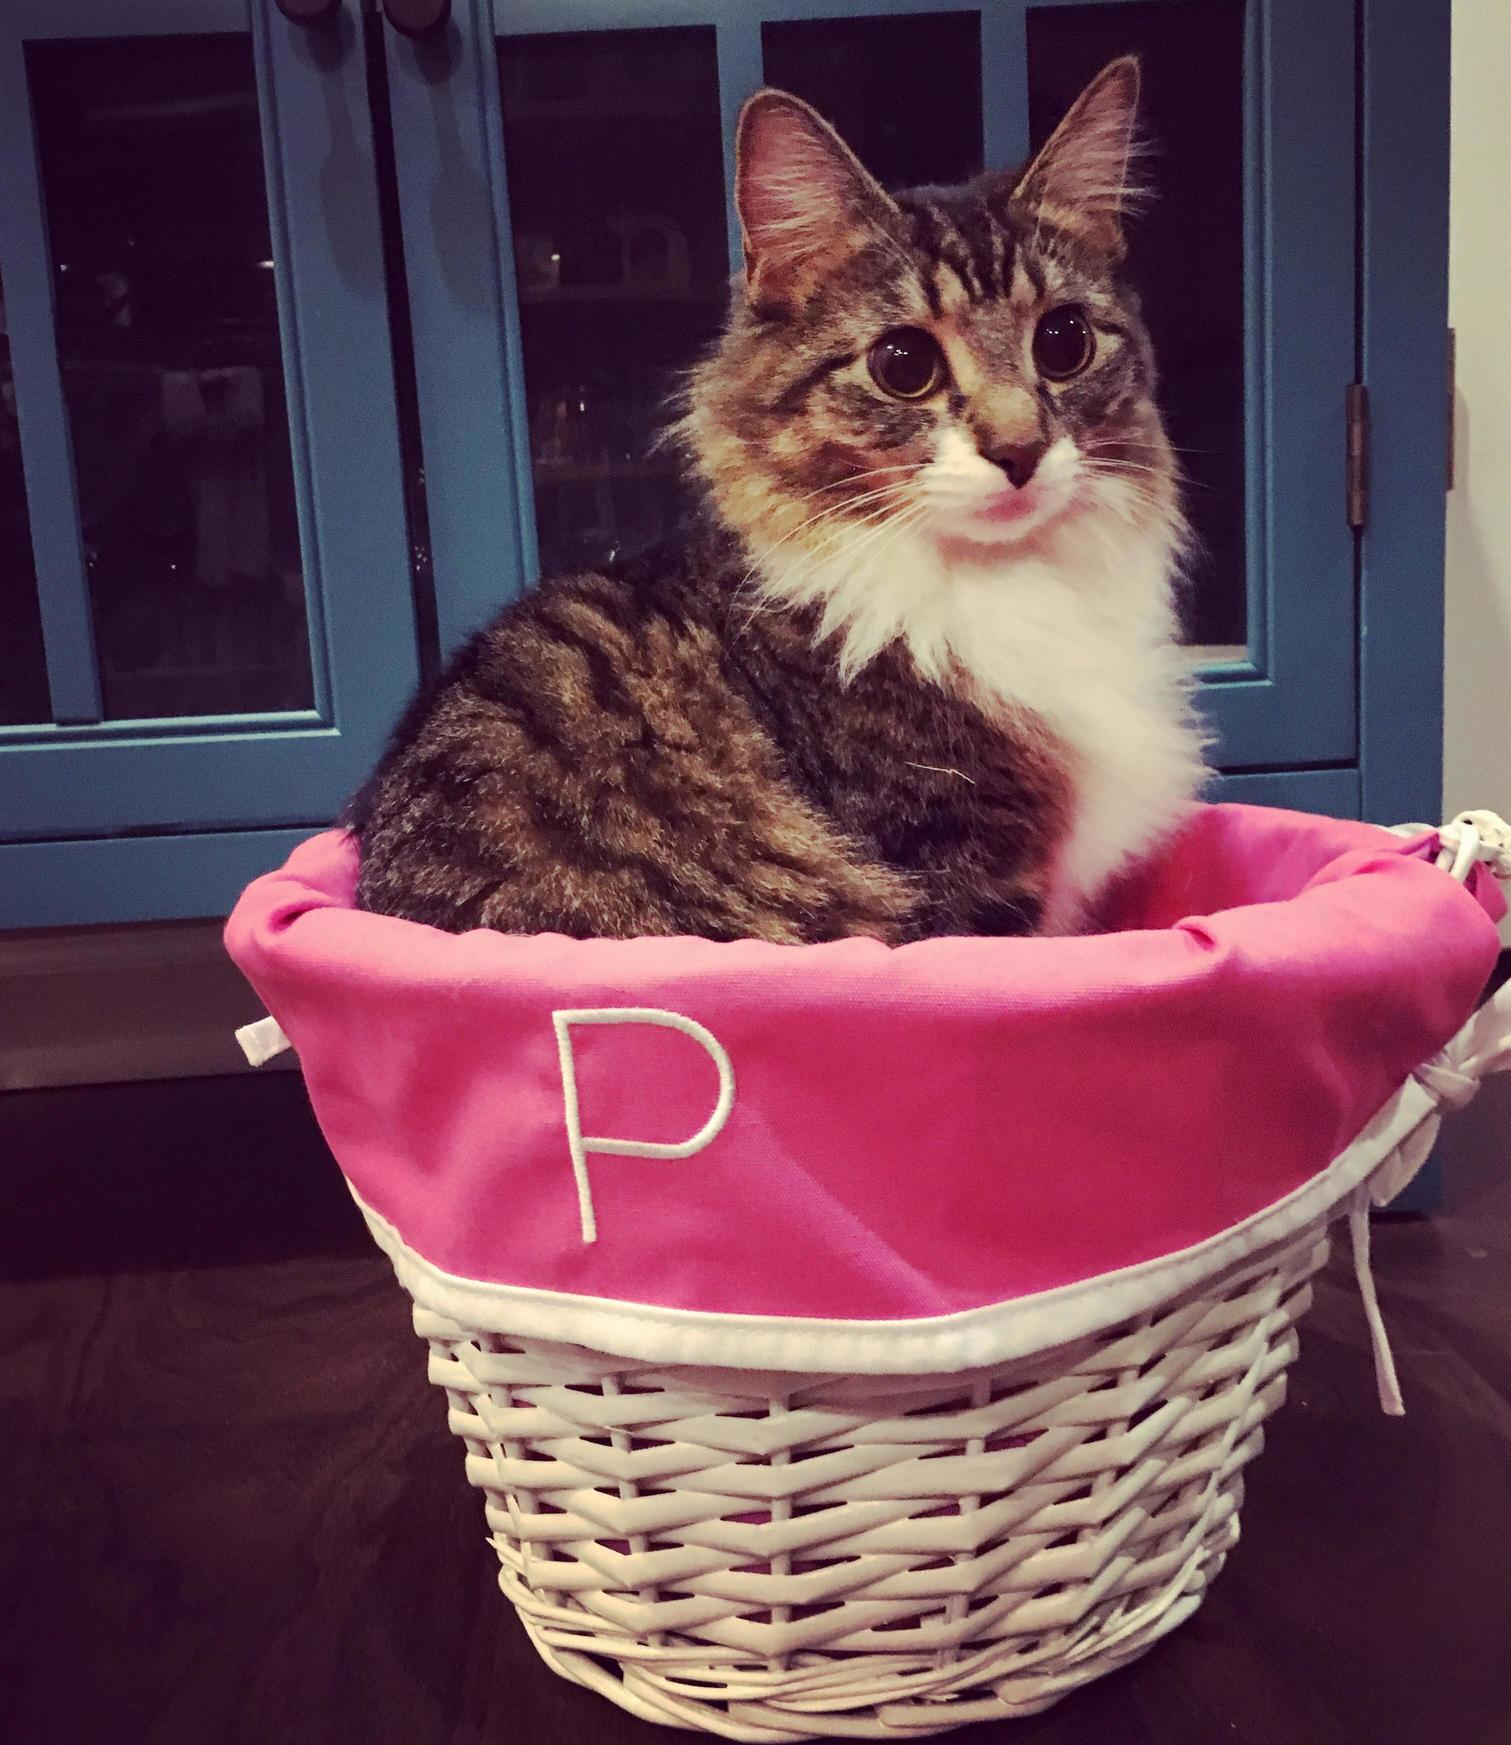 When your mom doesnt have grandkids so she buys your cats monogrammed easter baskets